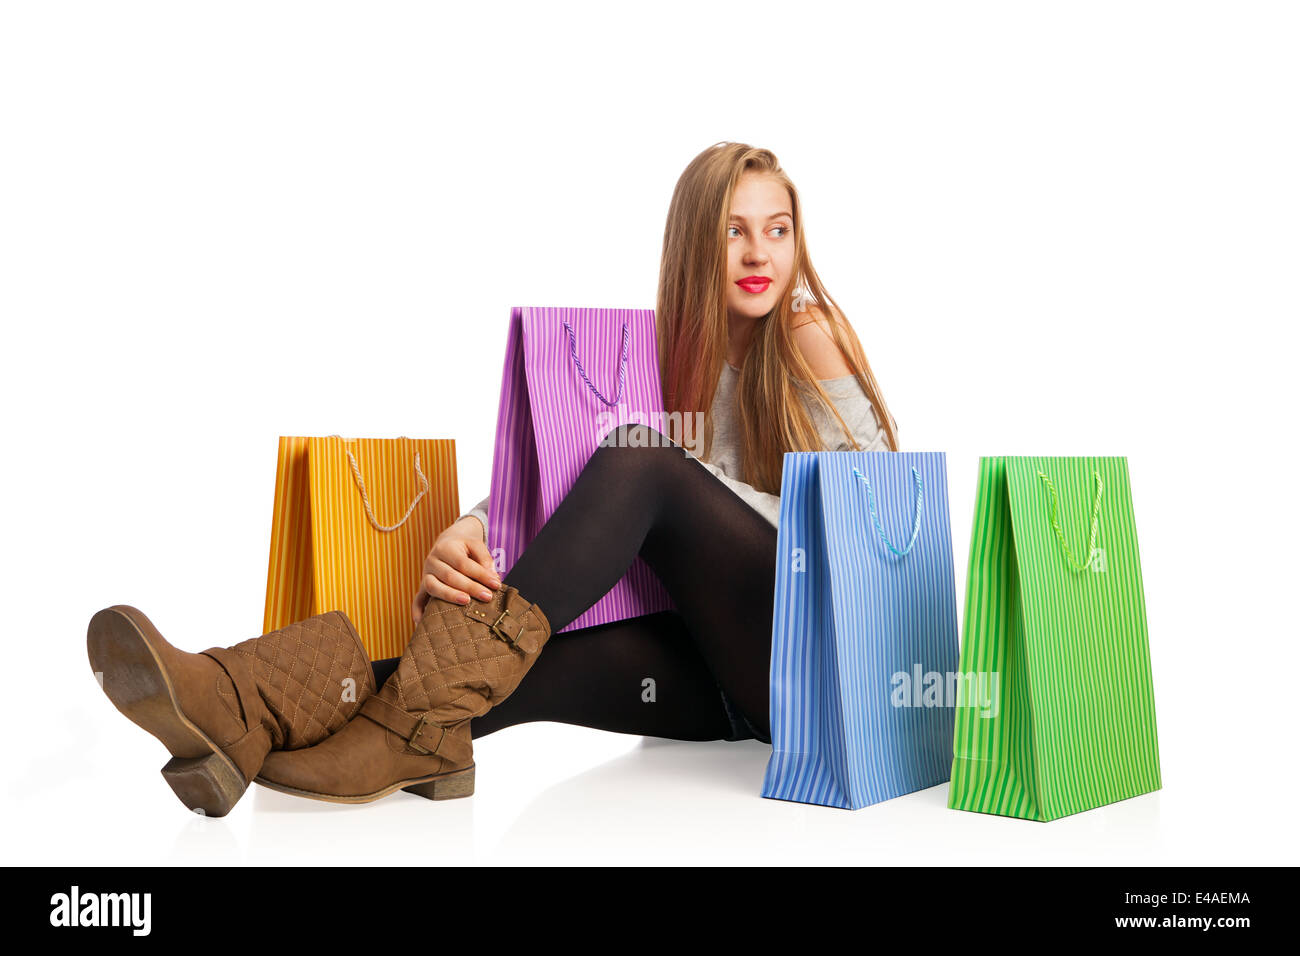 Beautiful excited woman sitting among colorful shopping bags - Stock Image